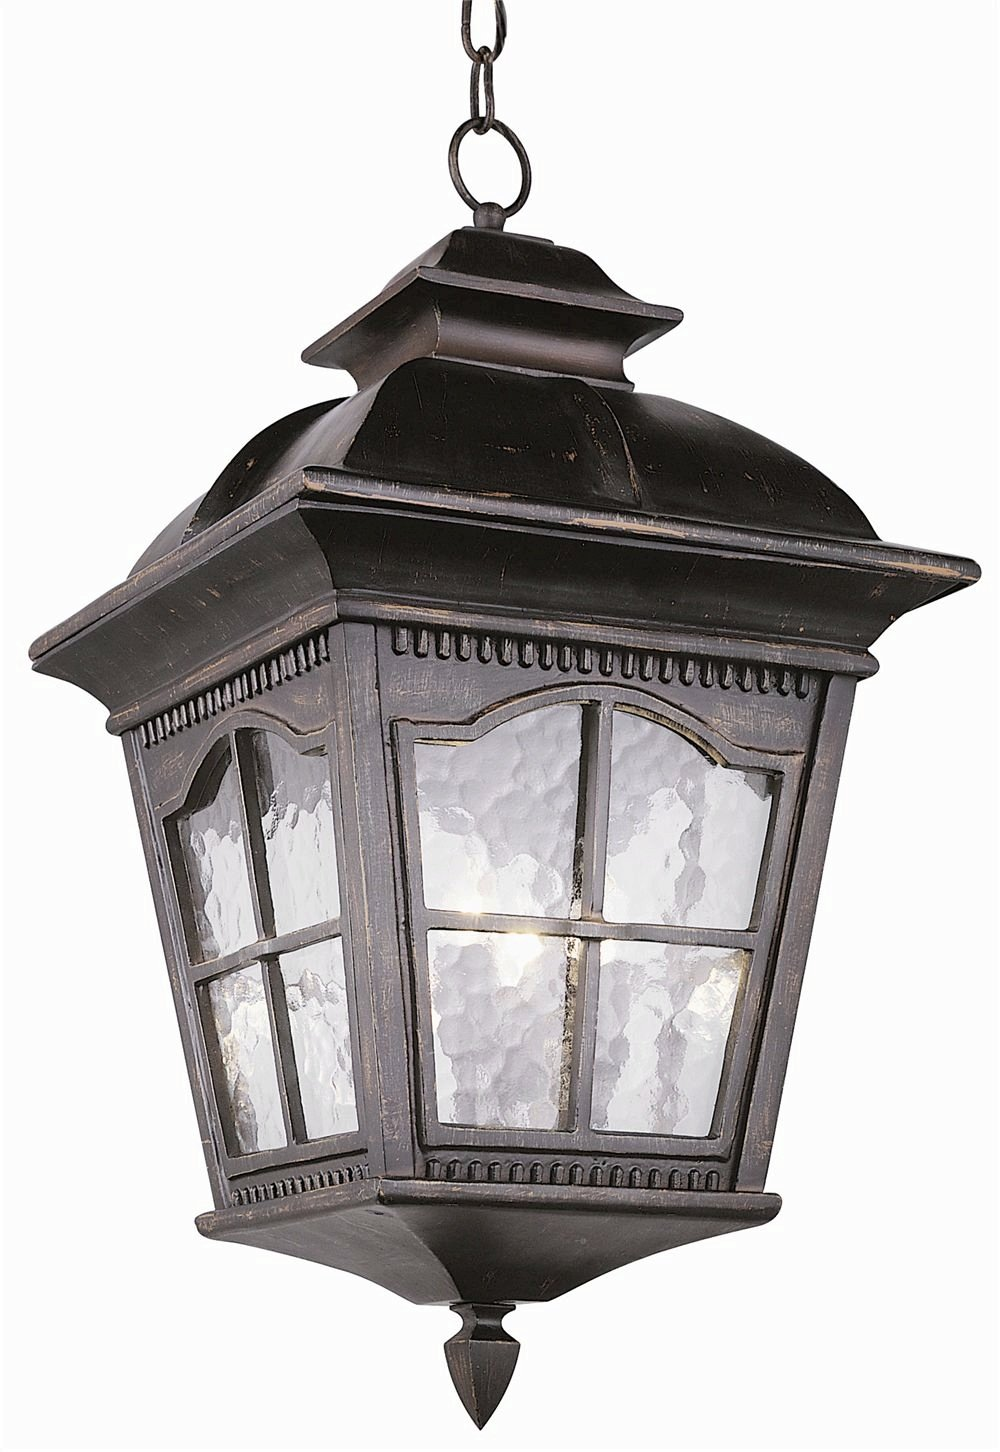 Trans Globe Lighting 5421 AR Outdoor Briarwood 21.25'' Hanging Lantern, Antique Rust by Trans Globe Lighting